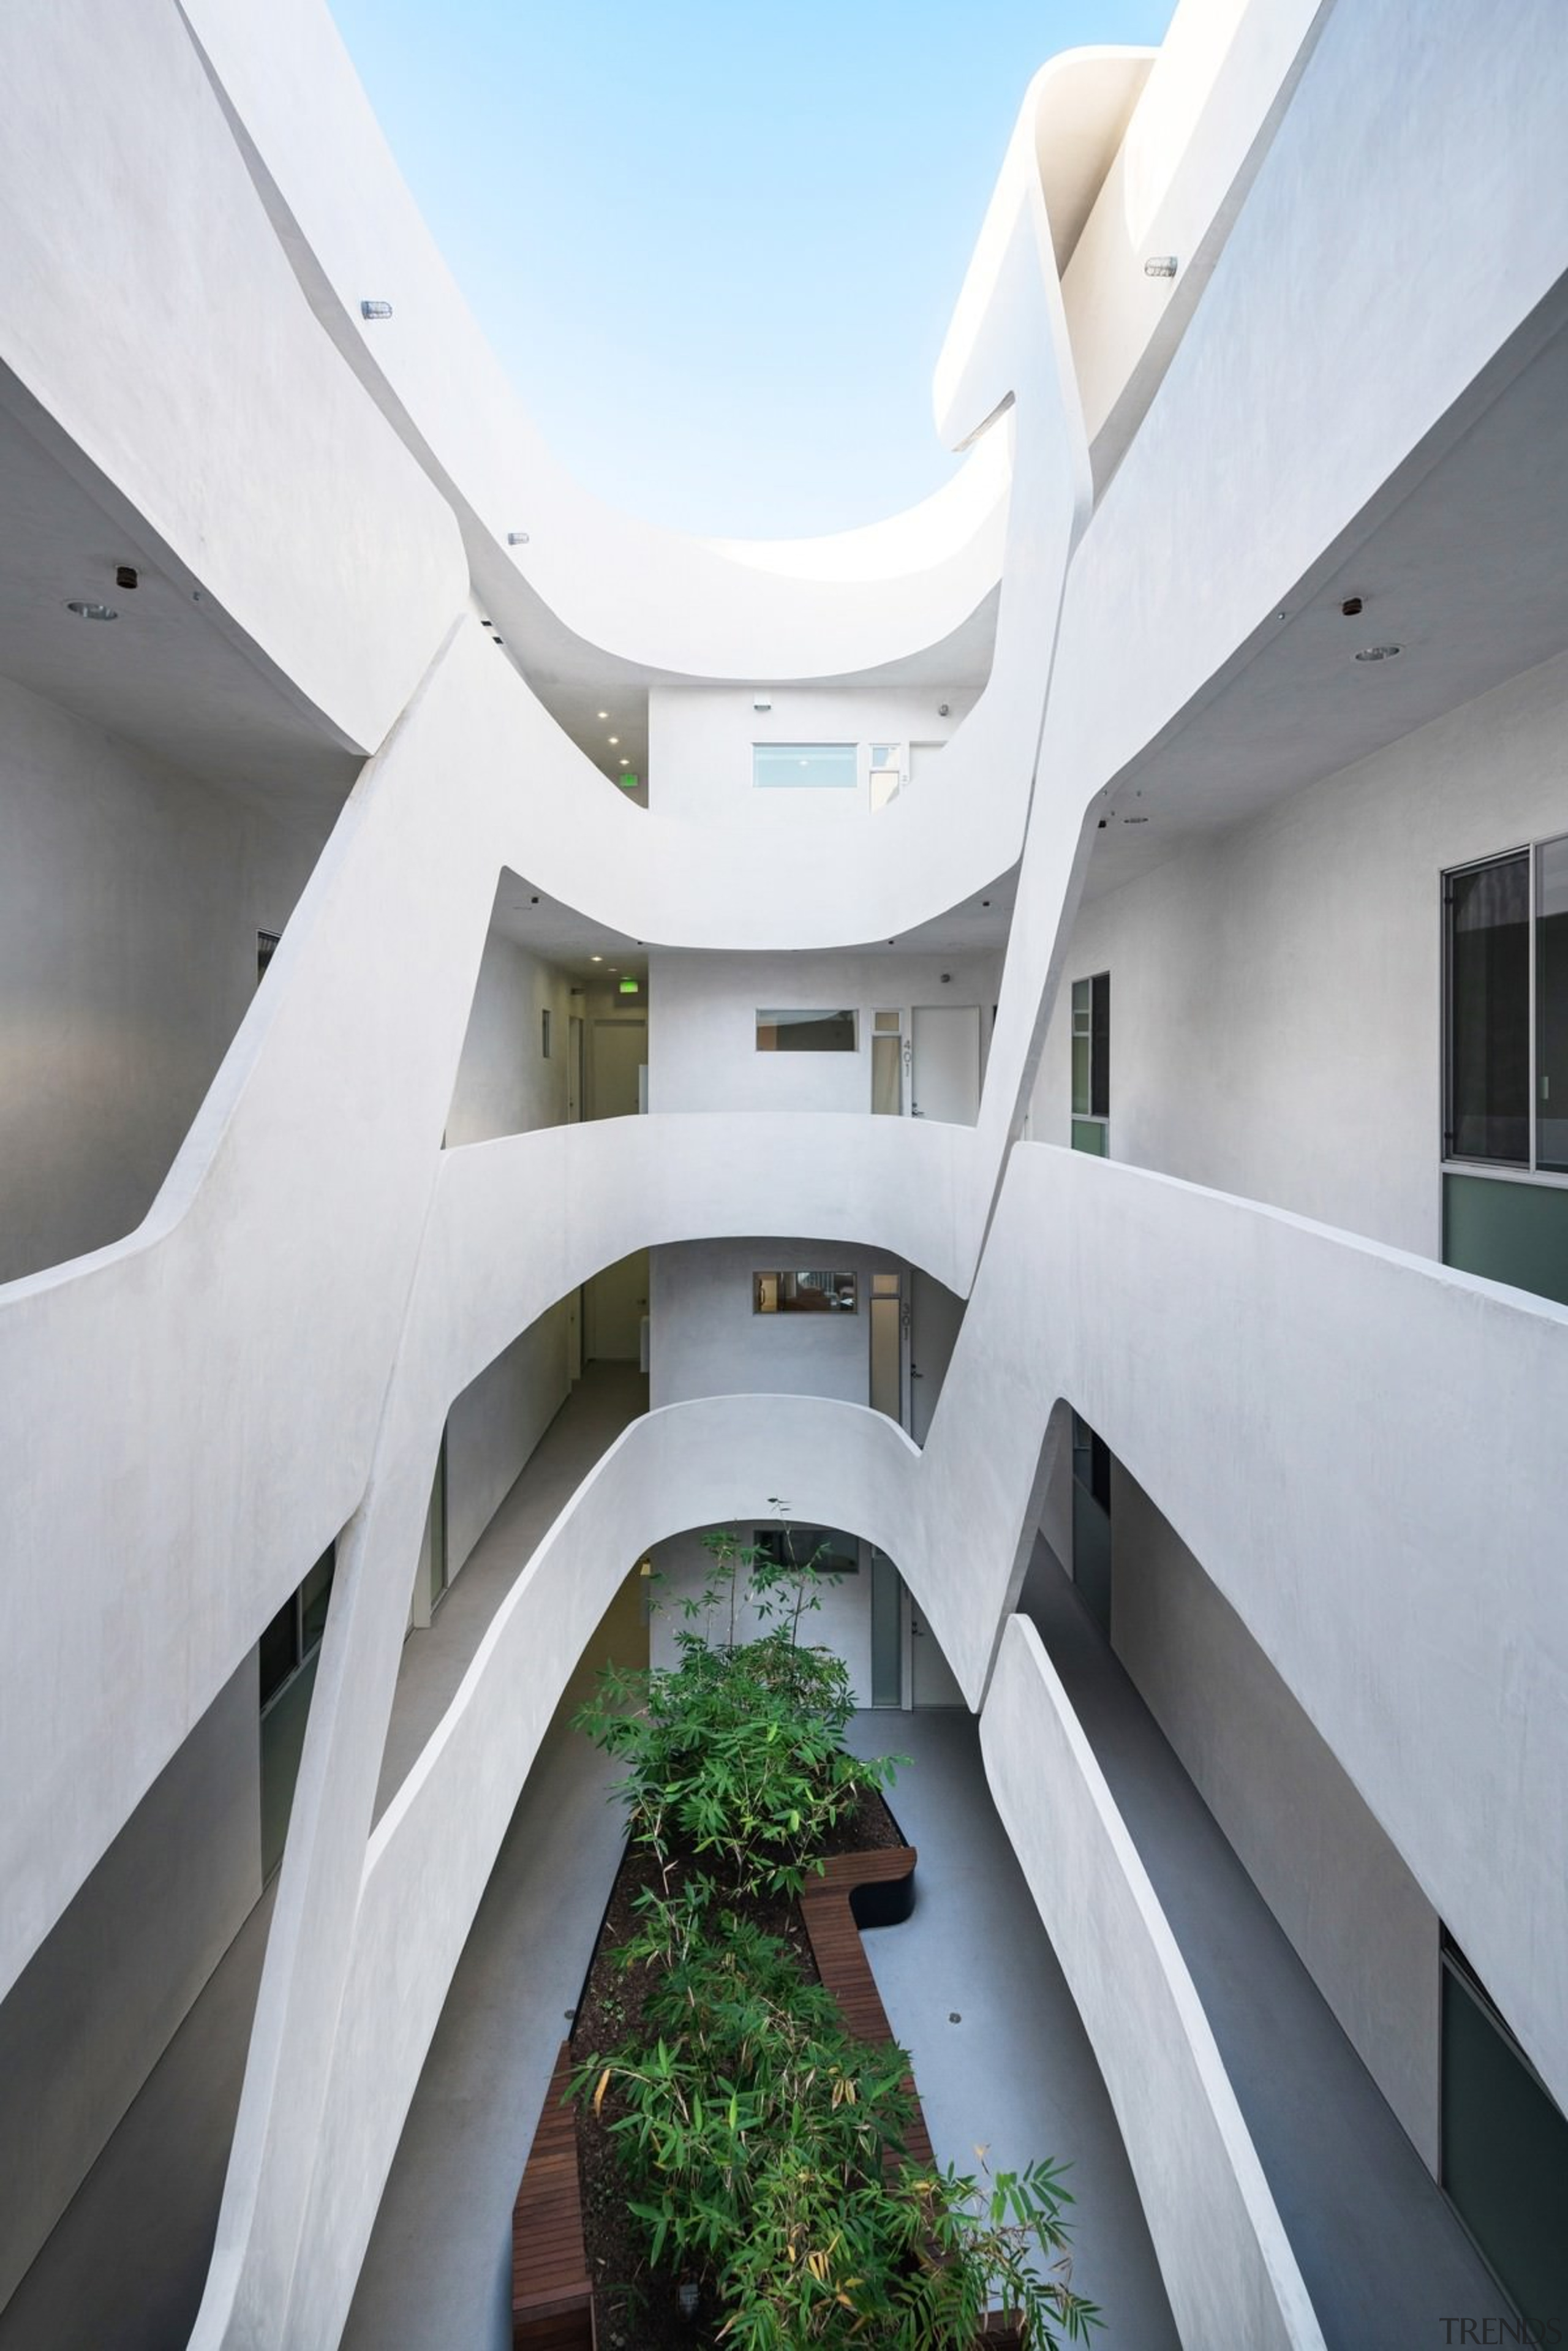 This courtyard area is a like a set apartment, architecture, building, condominium, daylighting, facade, headquarters, house, real estate, stairs, white